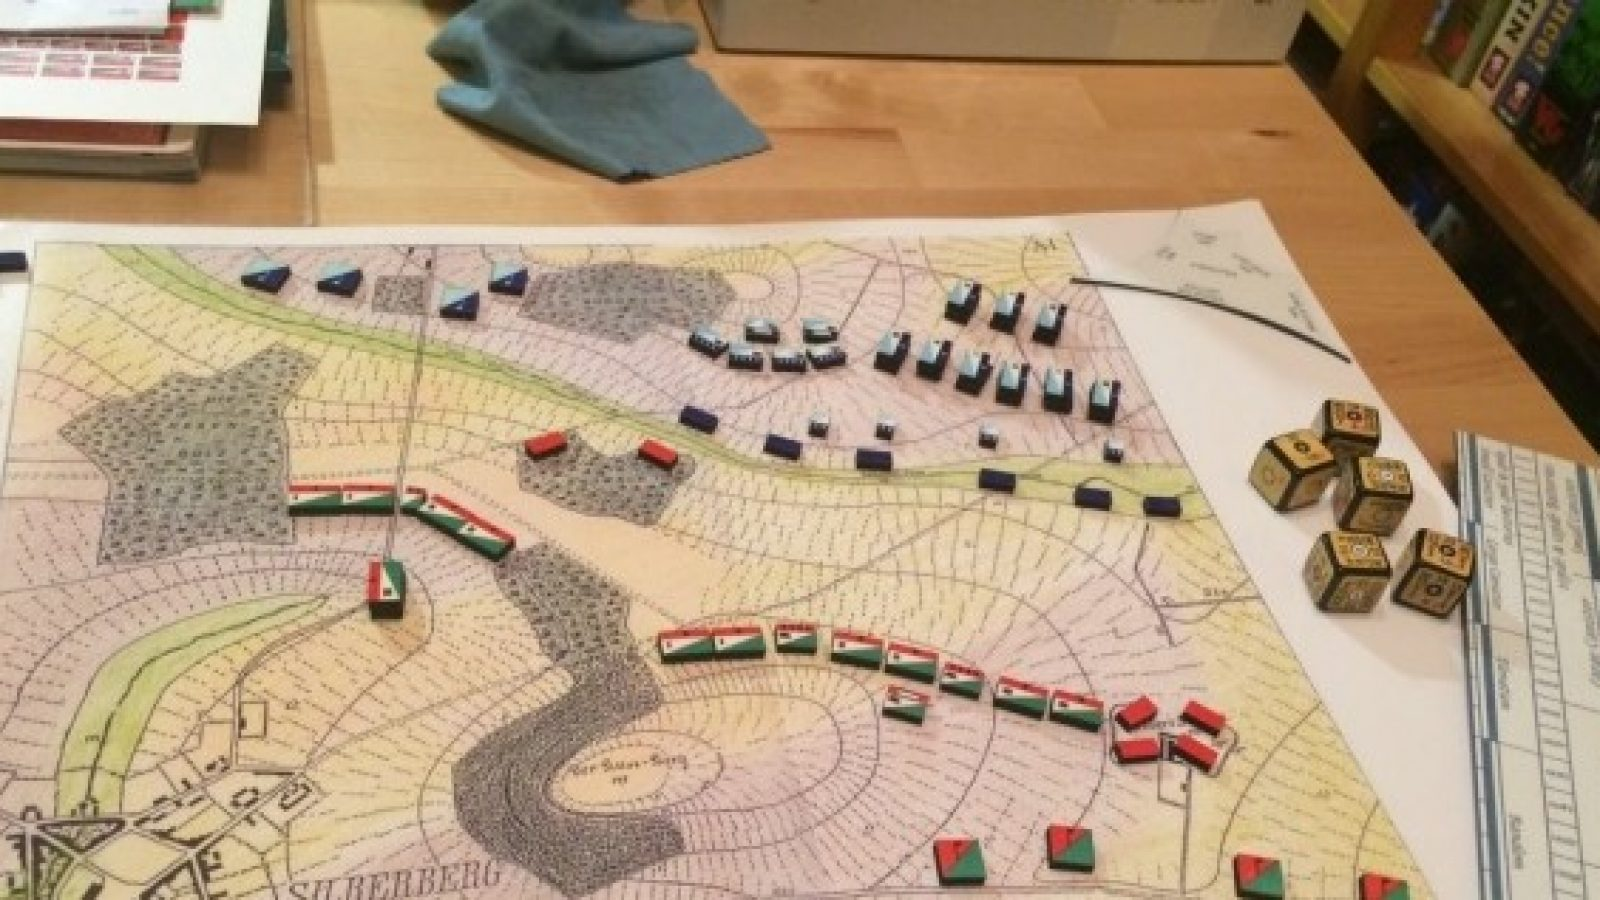 A photo of a wargaming board with pieces on a terrain map